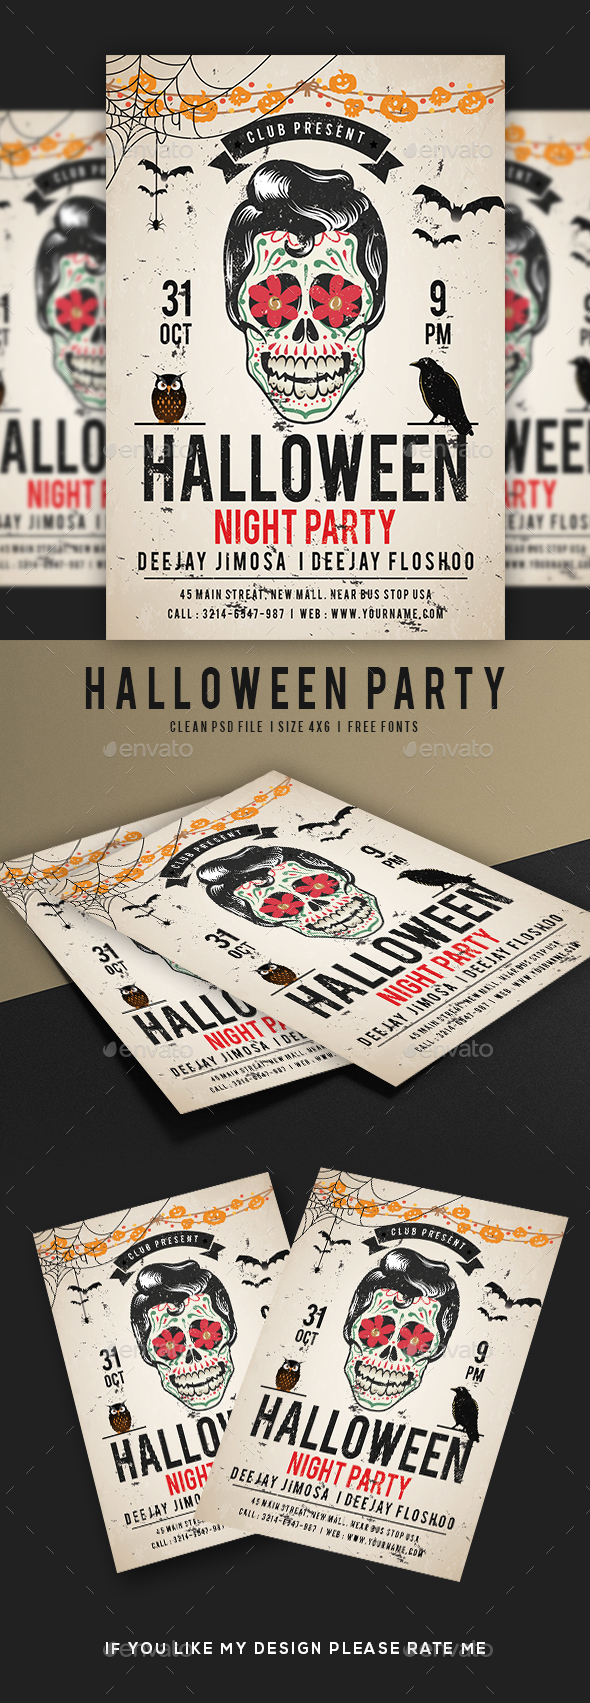 Halloween Night Party Flyer - Holidays Events